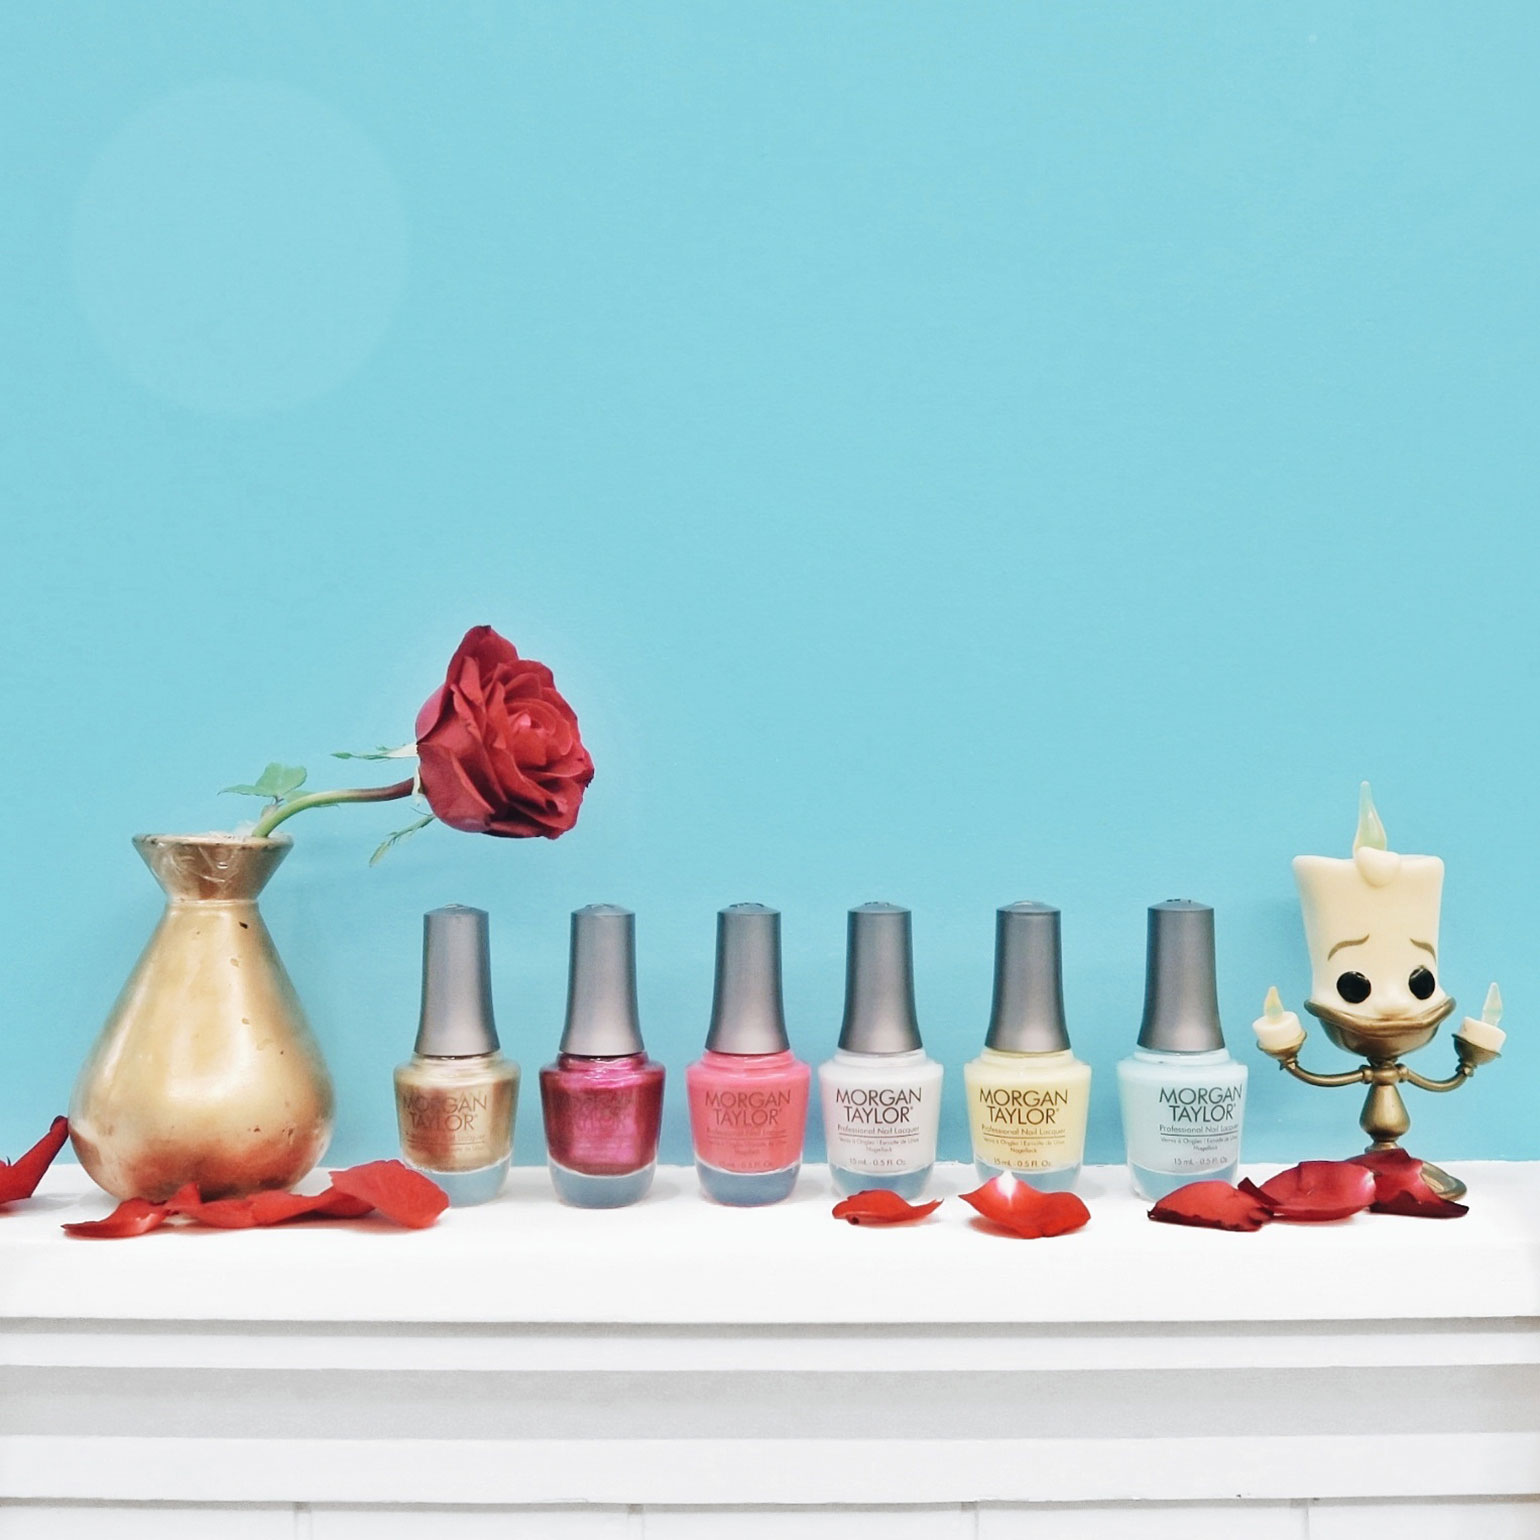 7 Morgan Taylor Beauty and the Beast Collection